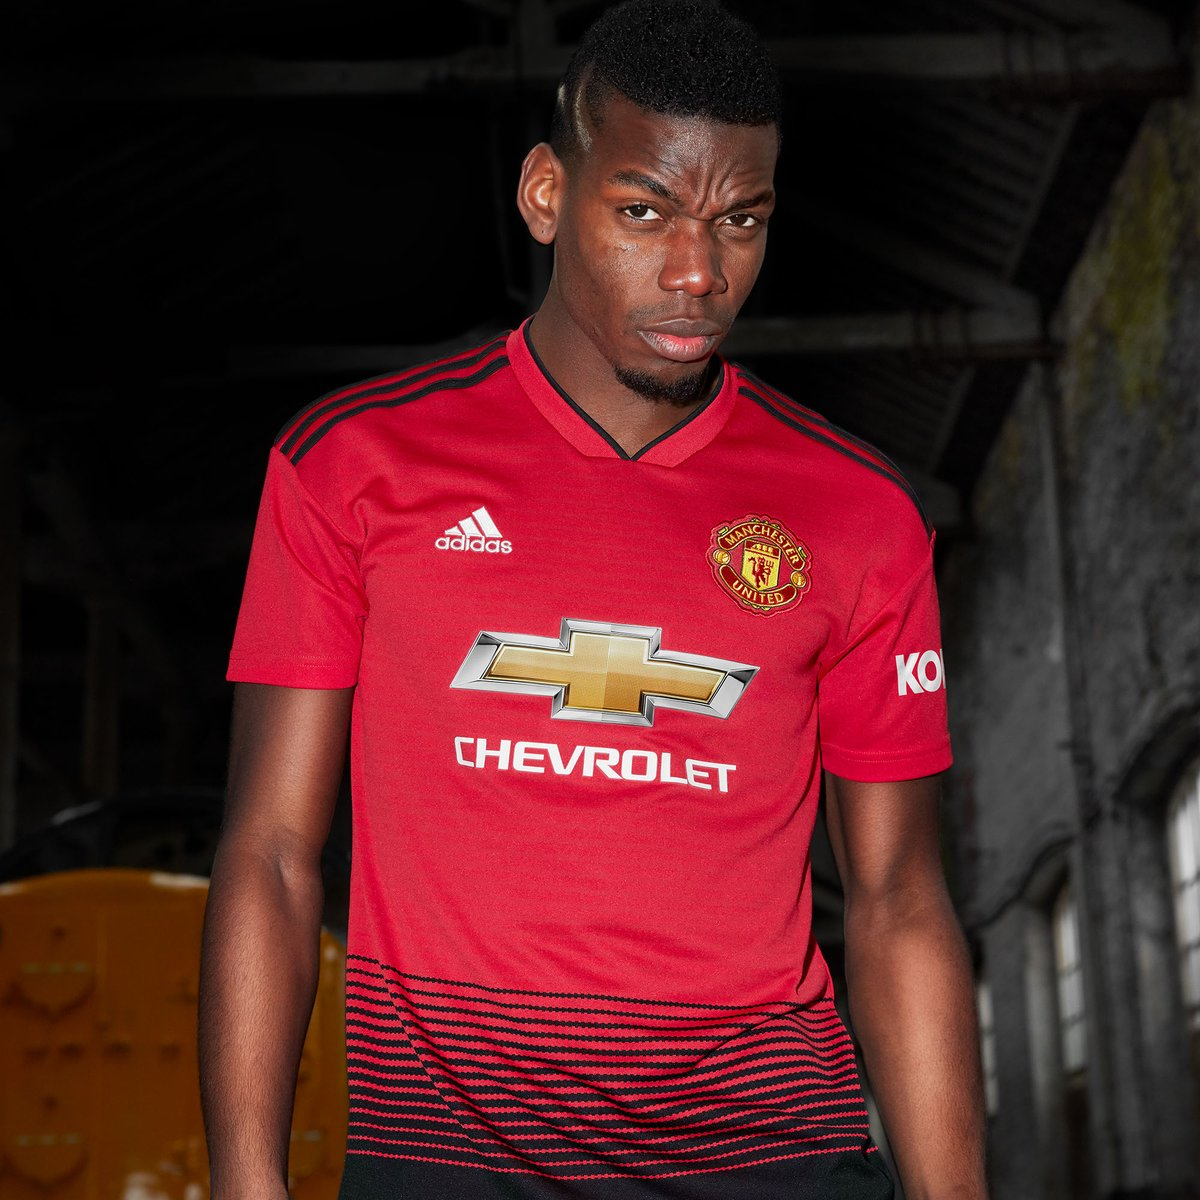 The new #MUFC kit! Thoughts anyone? 🤔